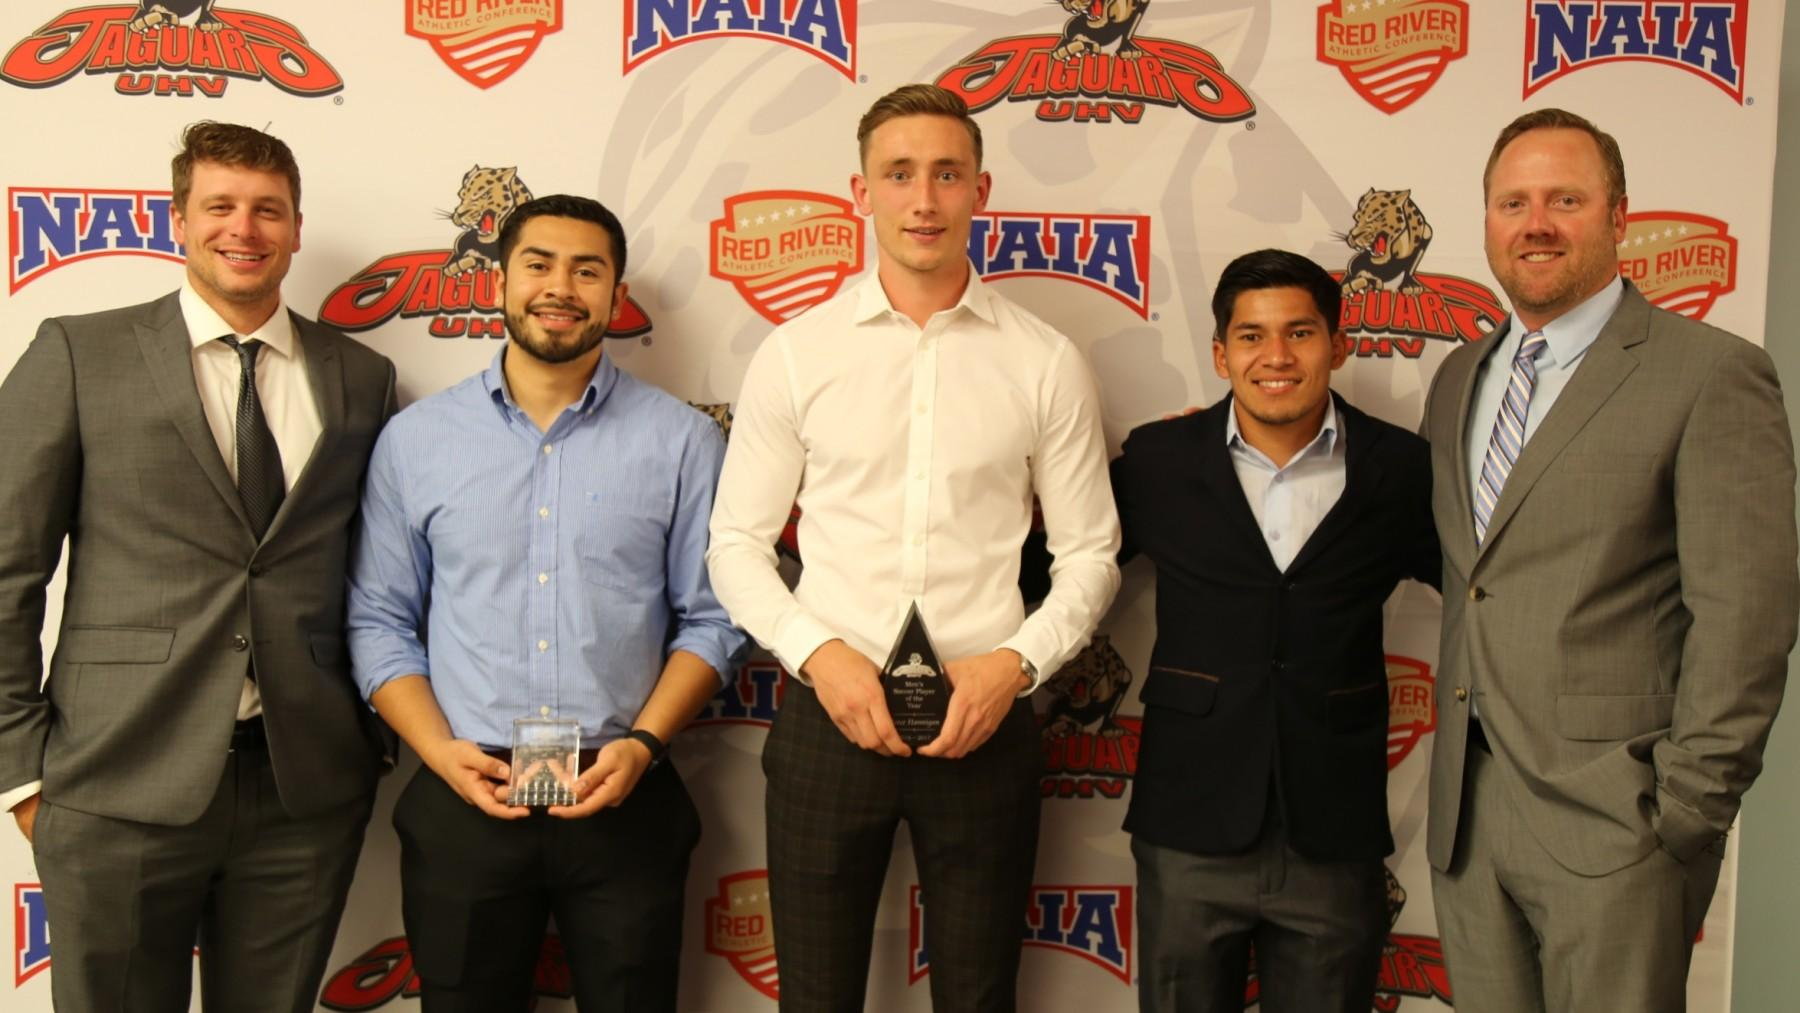 Hanningan named UHV Men's Soccer Player of the Year